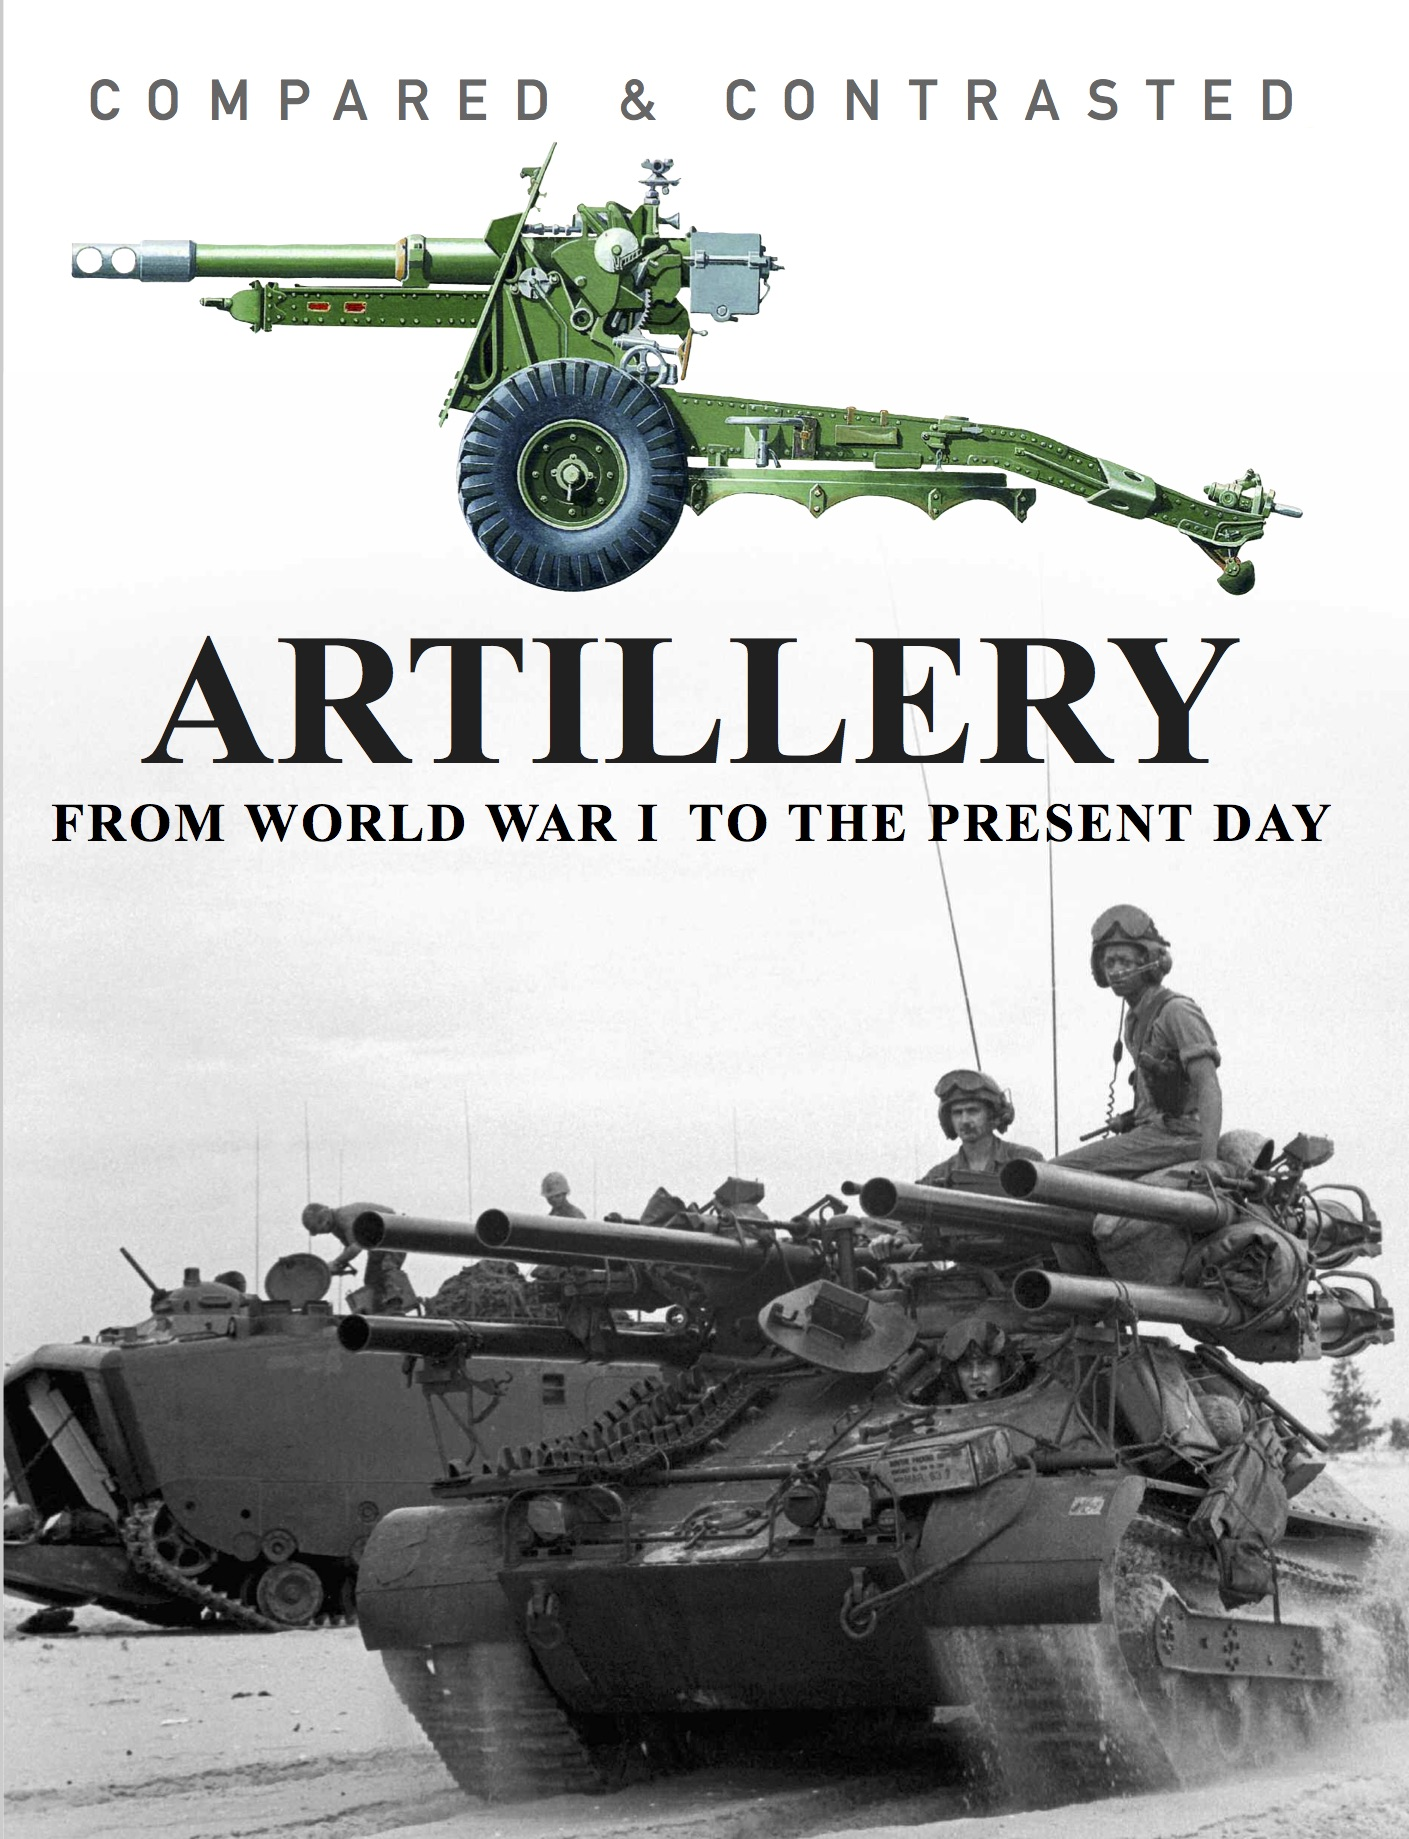 Artillery: Compared and Contrasted